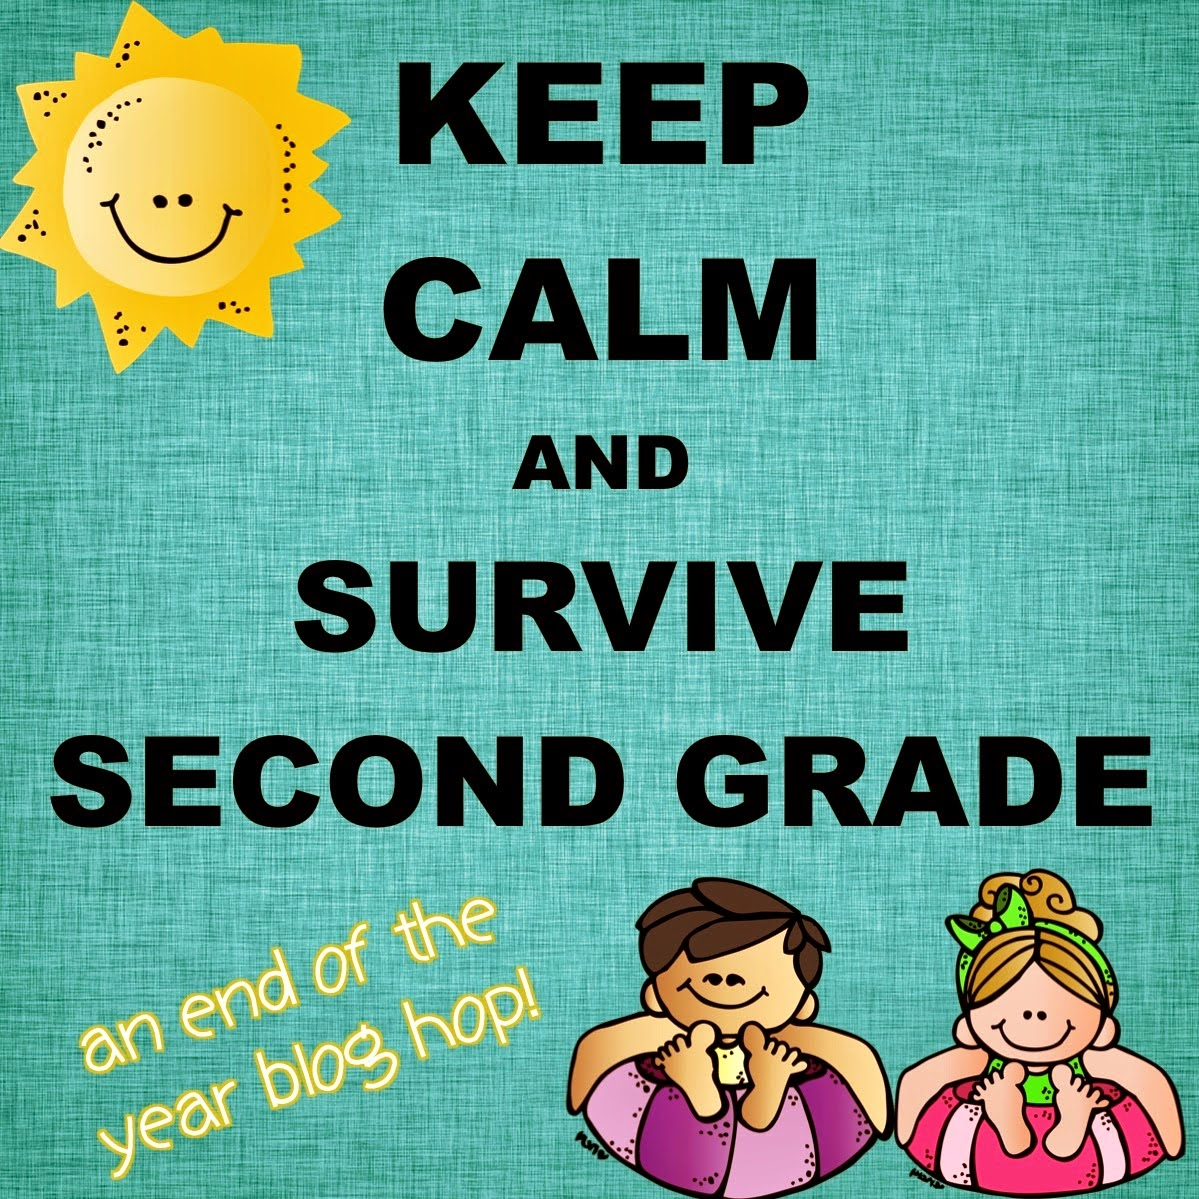 Diving Into 2nd Grade Second Grade End Of The Year Blog Hop